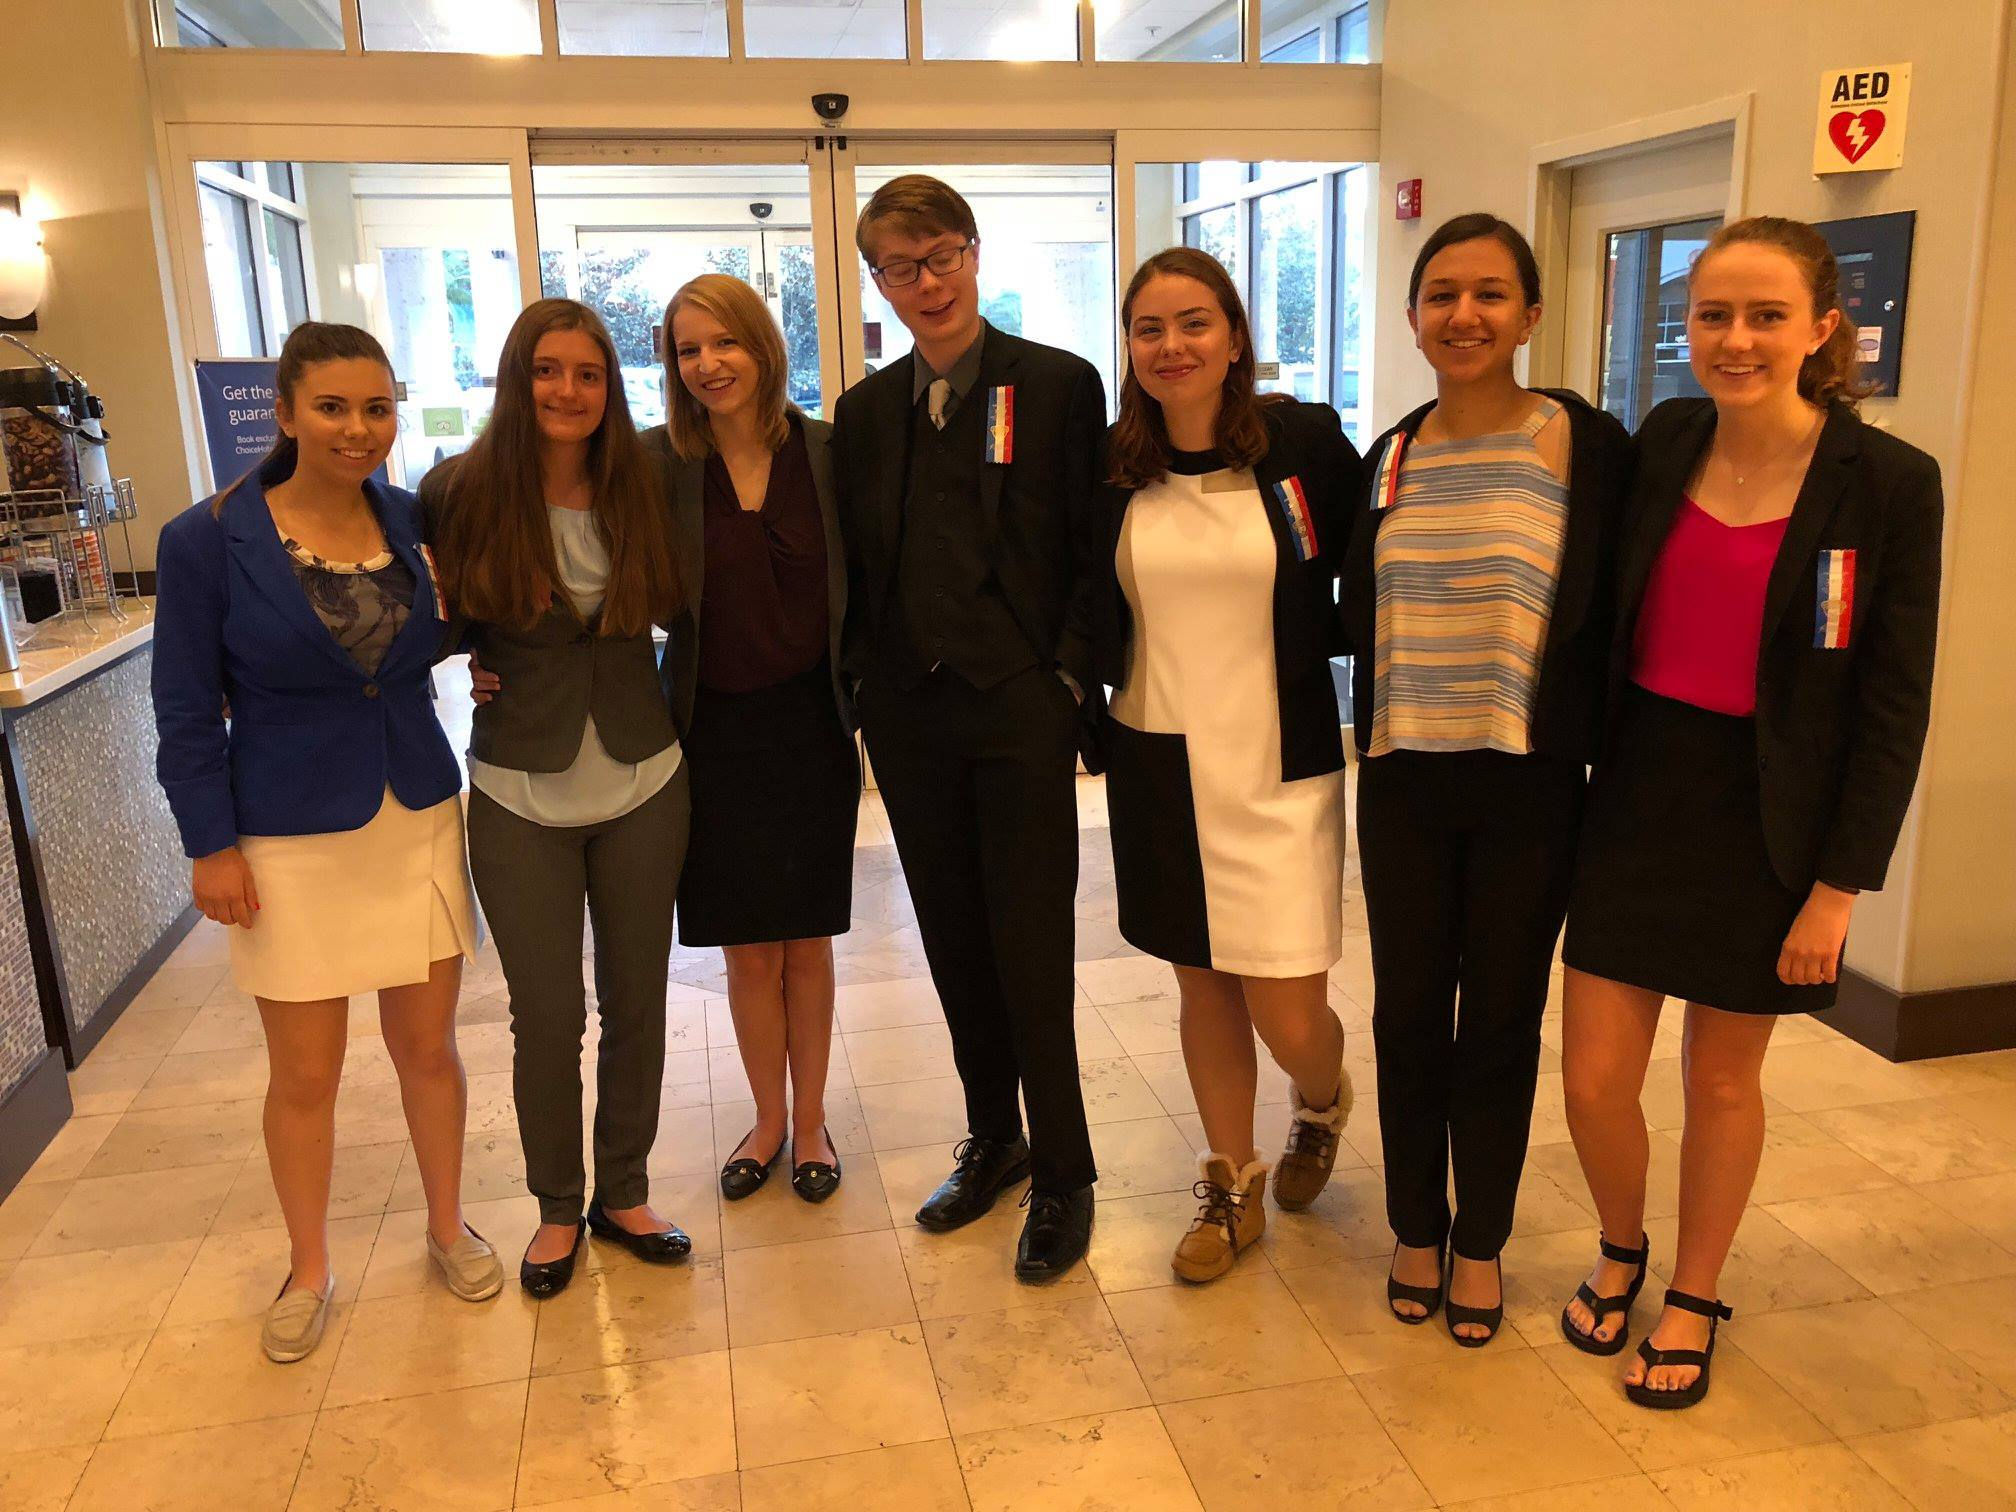 OHS qualifiers for the national speech and debate tournament